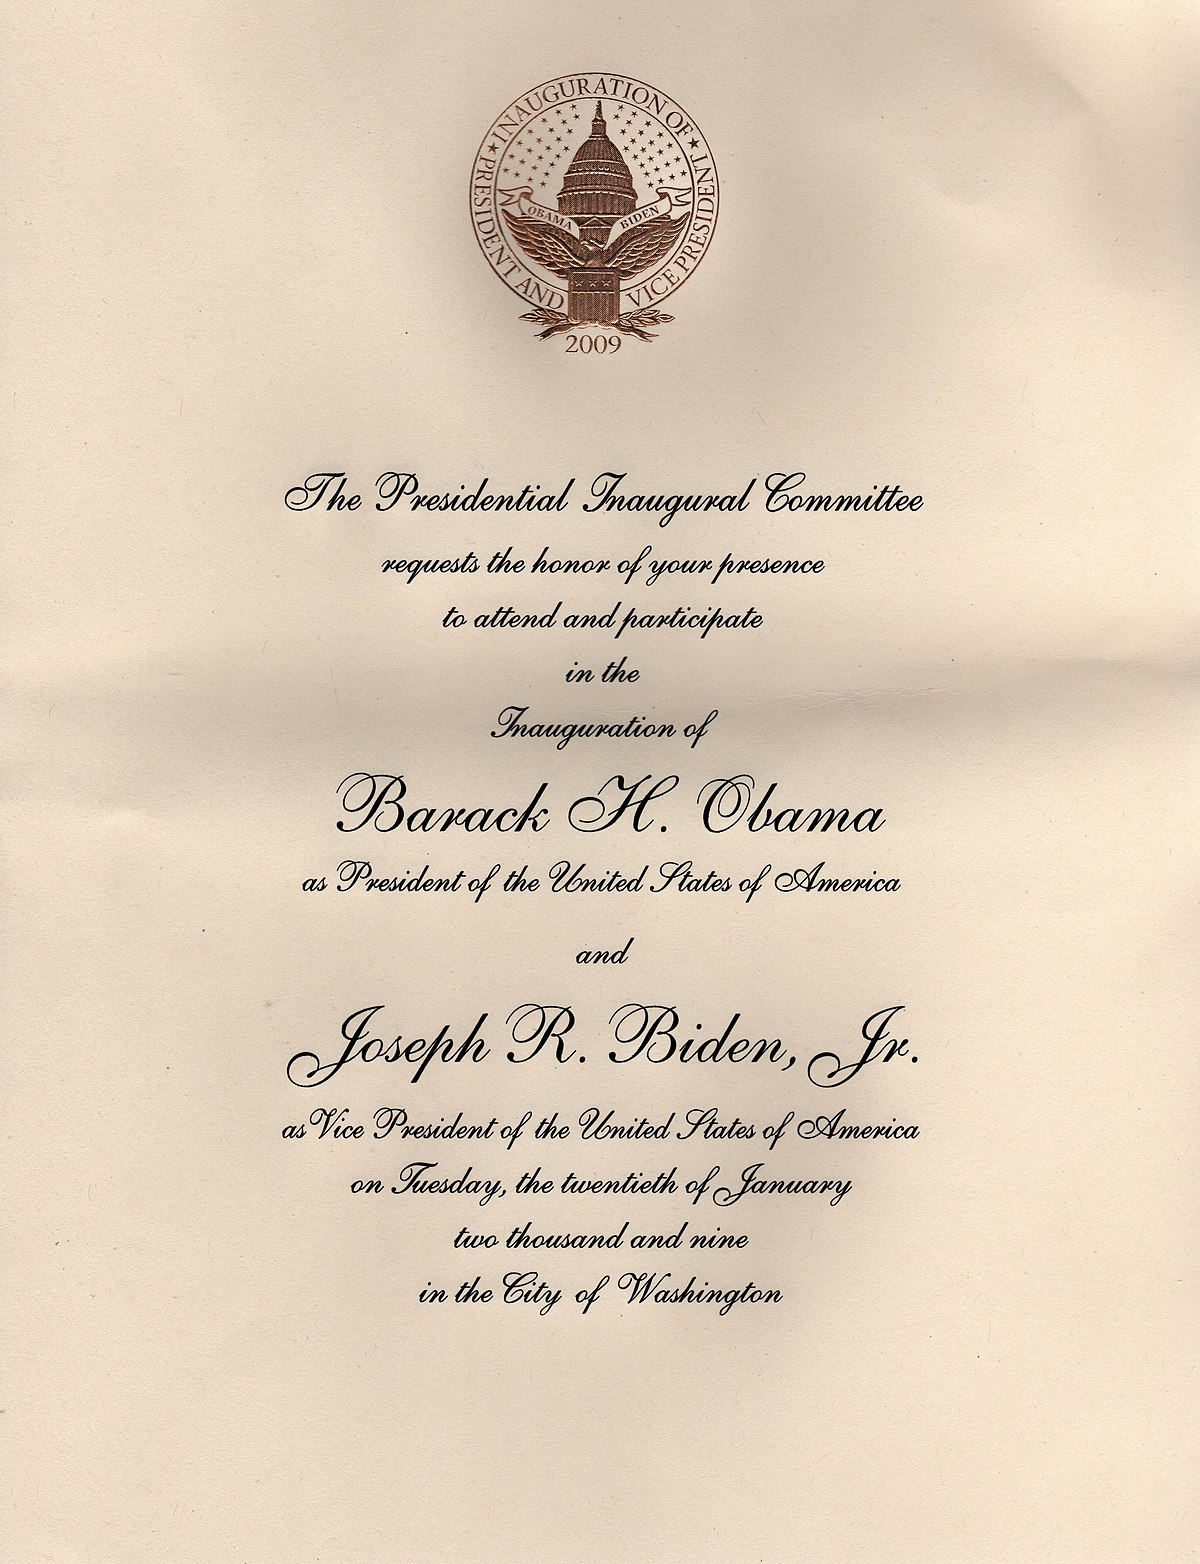 Invitations To The First Inauguration Of Barack Obama